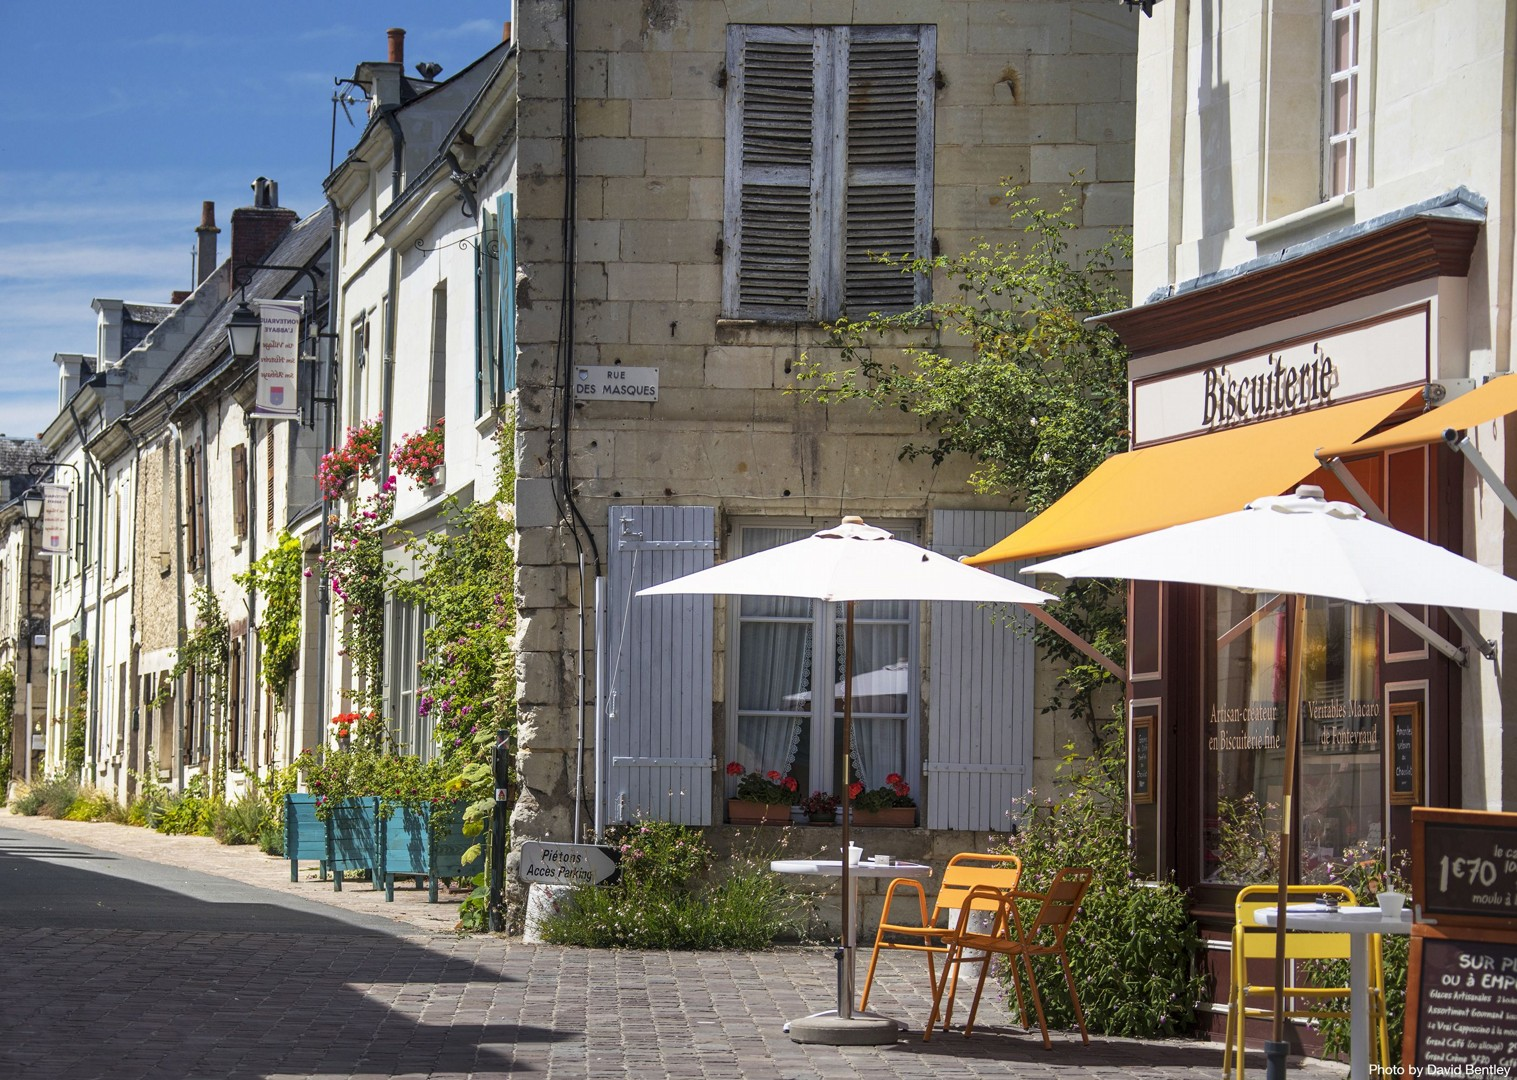 france-self-guided-leisure-holiday.jpg - France - Chateaux of the Loire - Self-Guided Leisure Cycling Holiday - Leisure Cycling